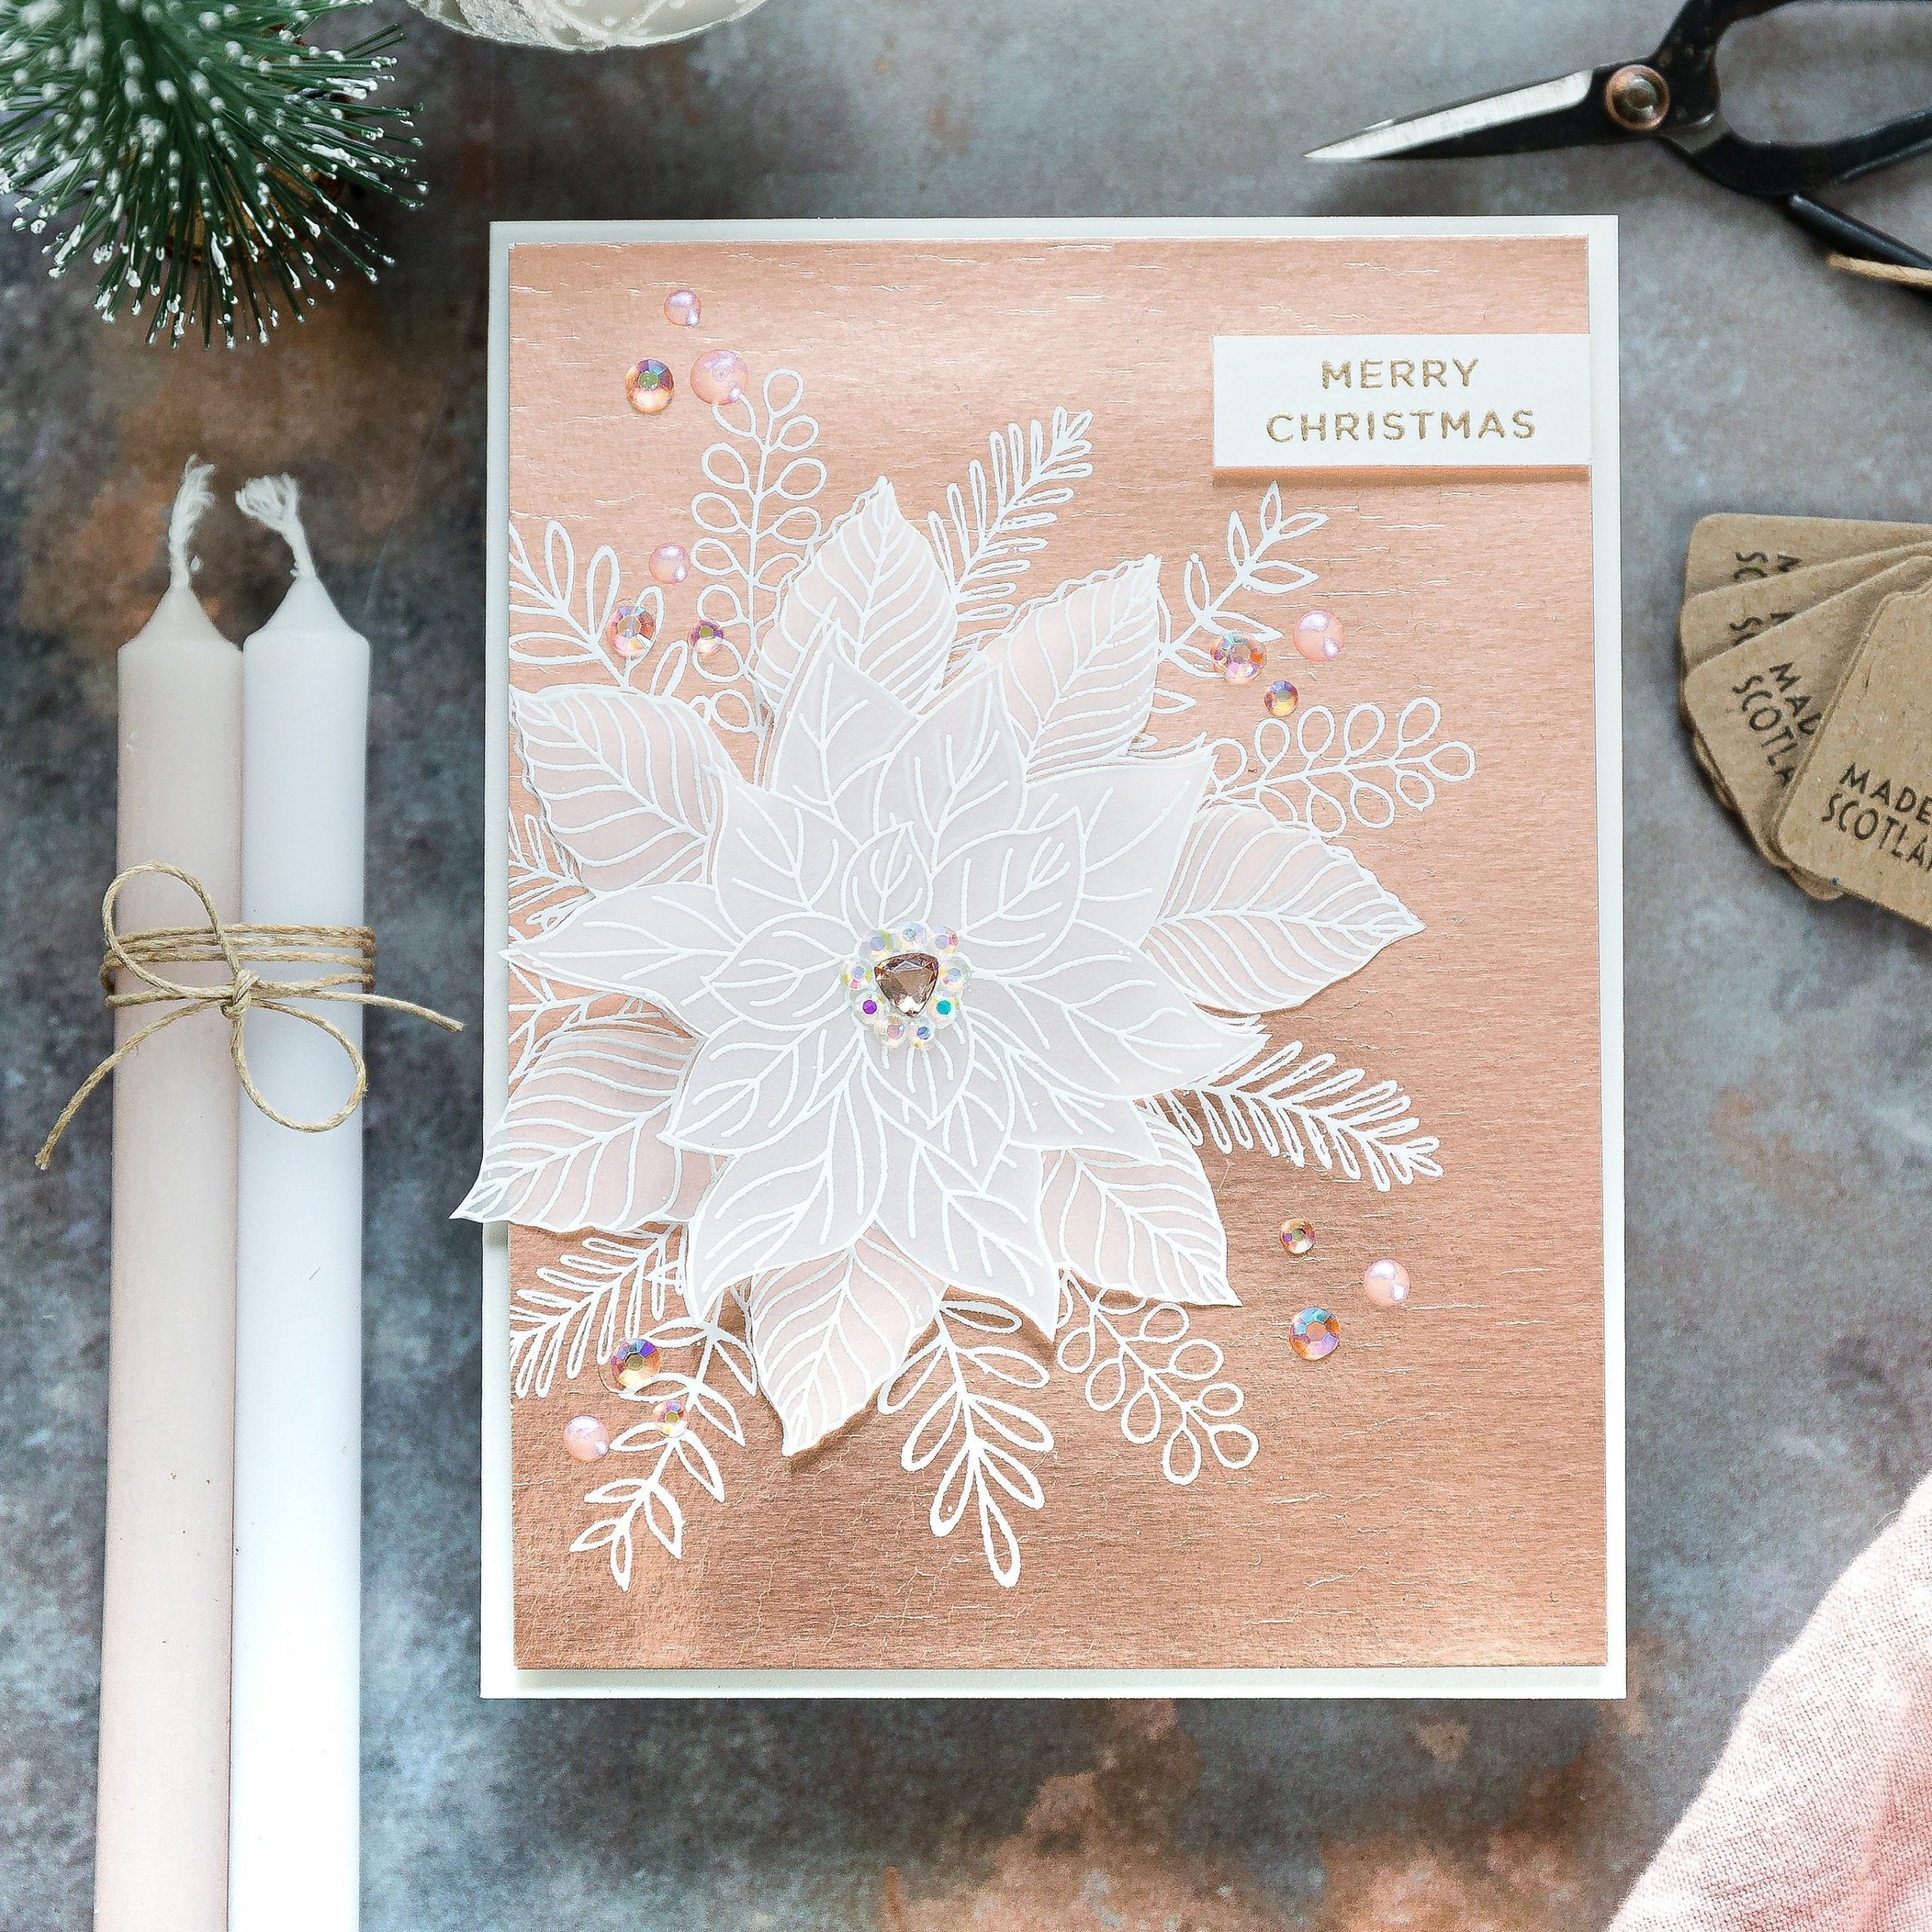 Gina K exclusive STAMPtember Festive Floral set. Handmade Christmas card by Debby Hughes. Find out more here: https://limedoodledesign.com/2019/09/gina-k-stamptember/